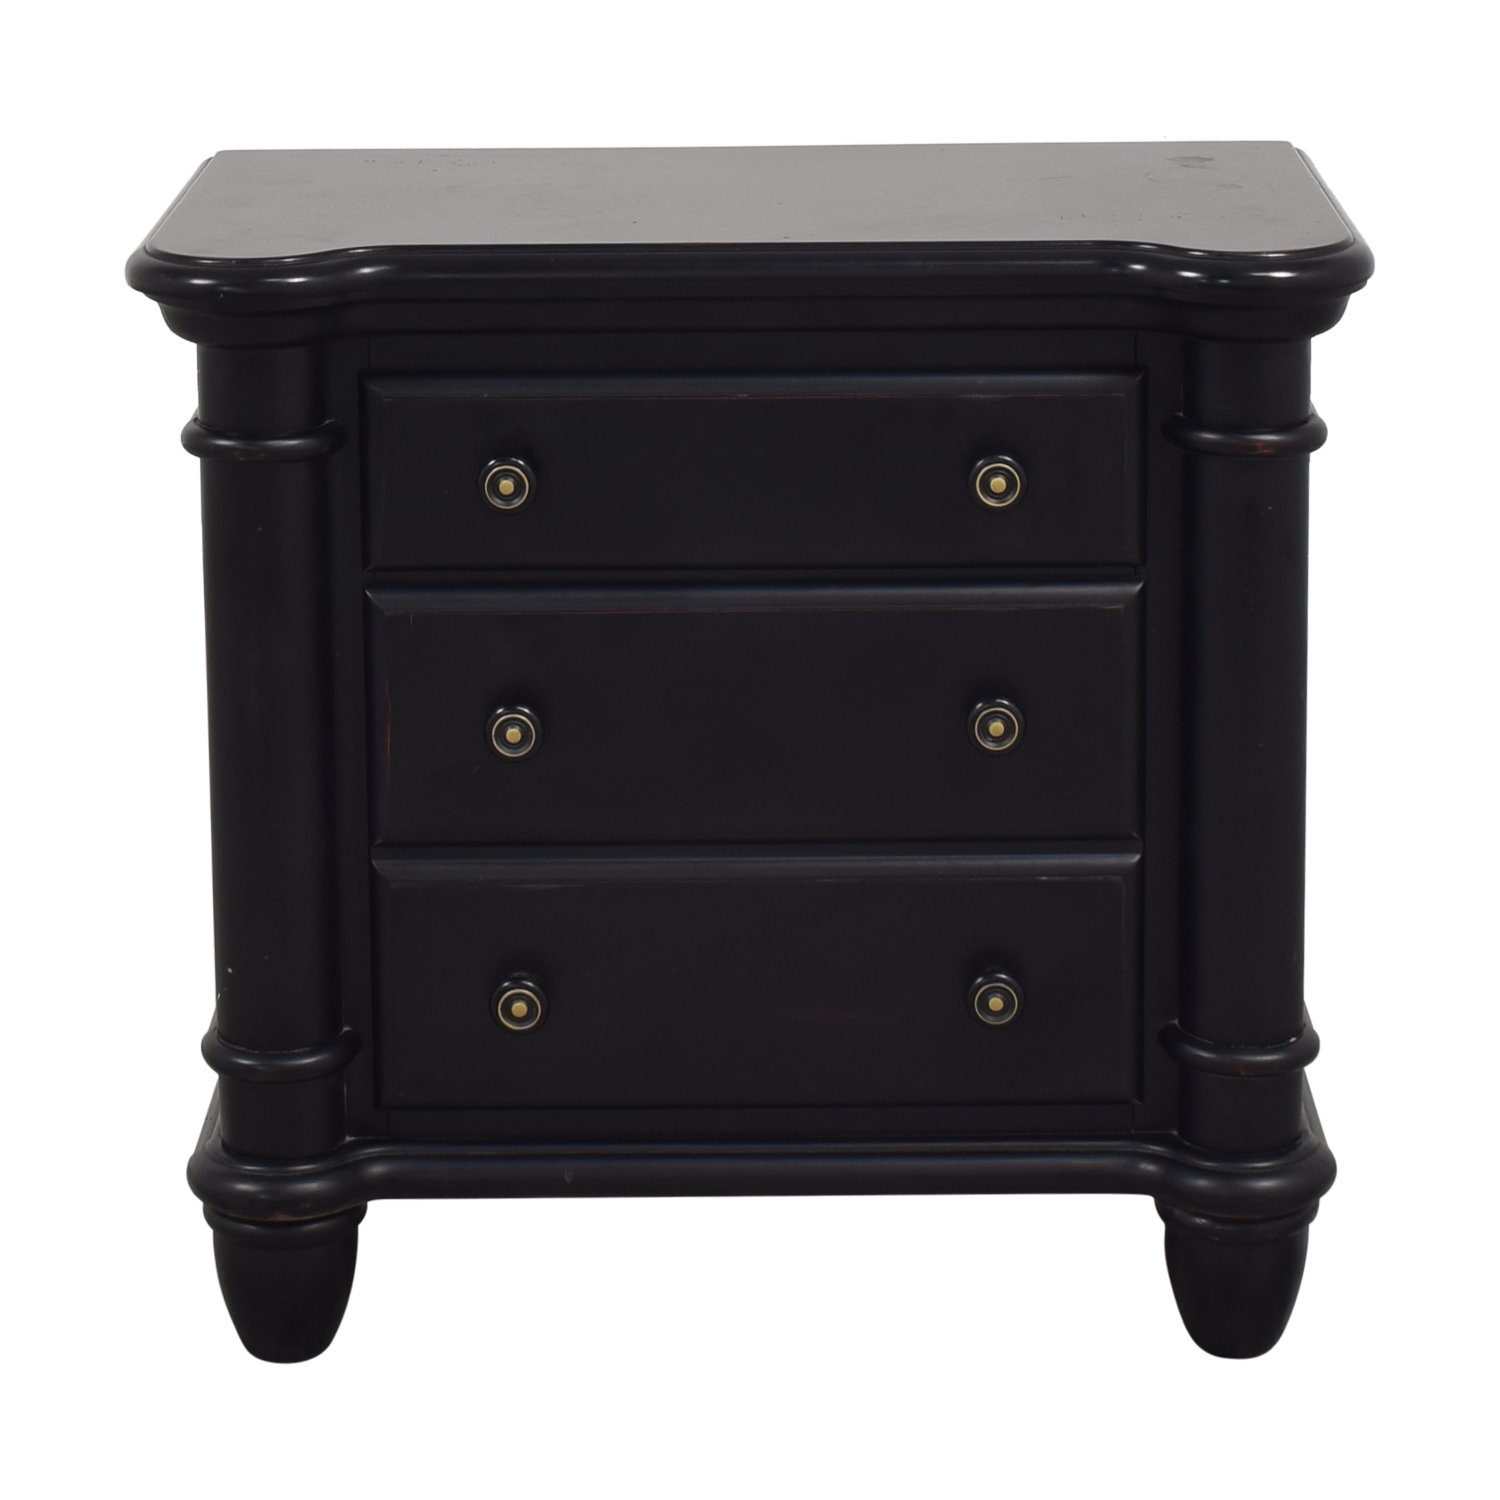 Two Drawer Nightstand dimensions